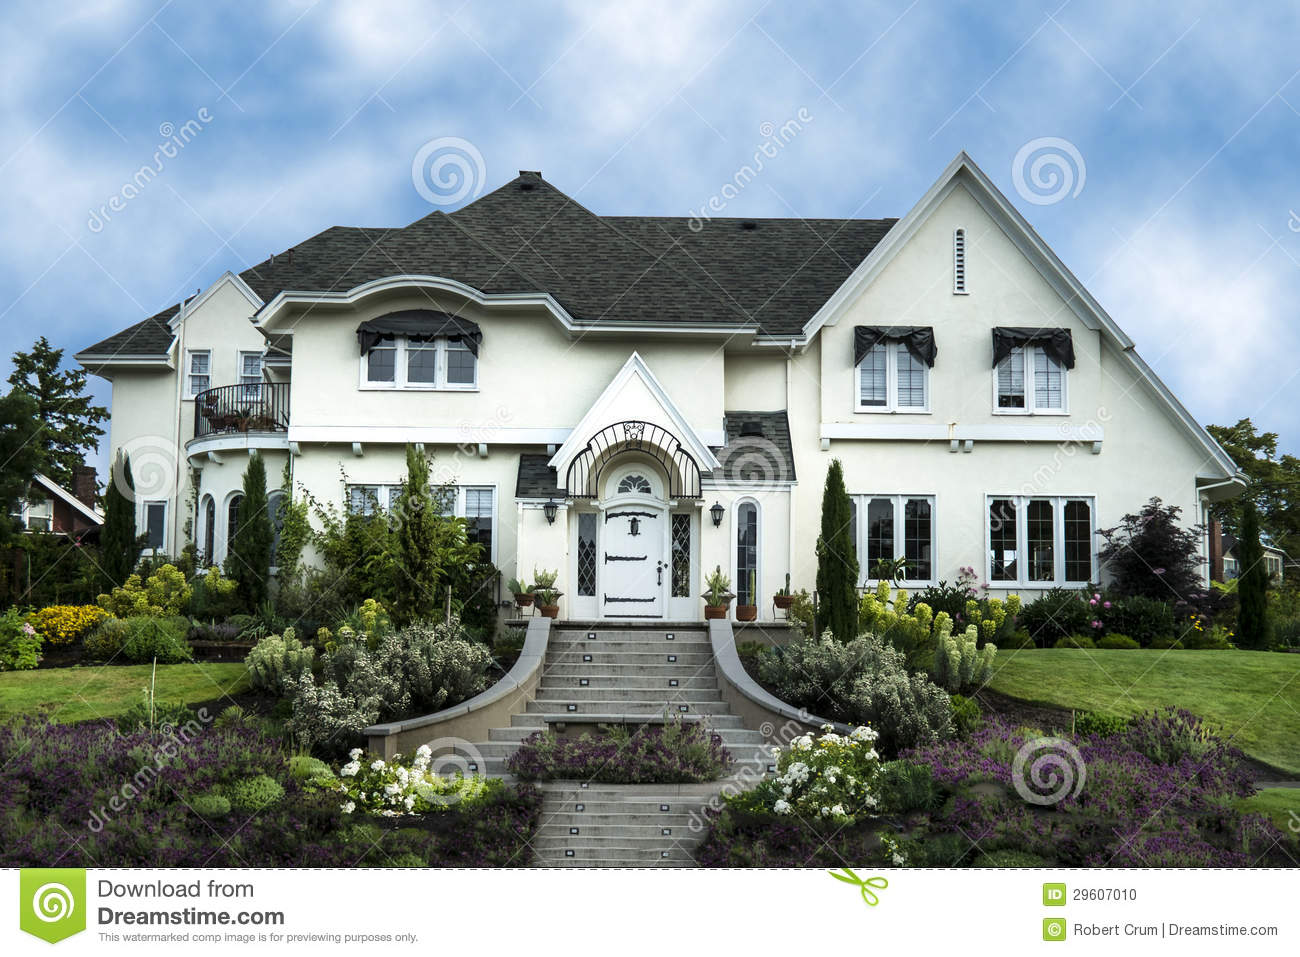 royalty free stock photo download exterior of white stucco luxury house - Luxury House Exterior